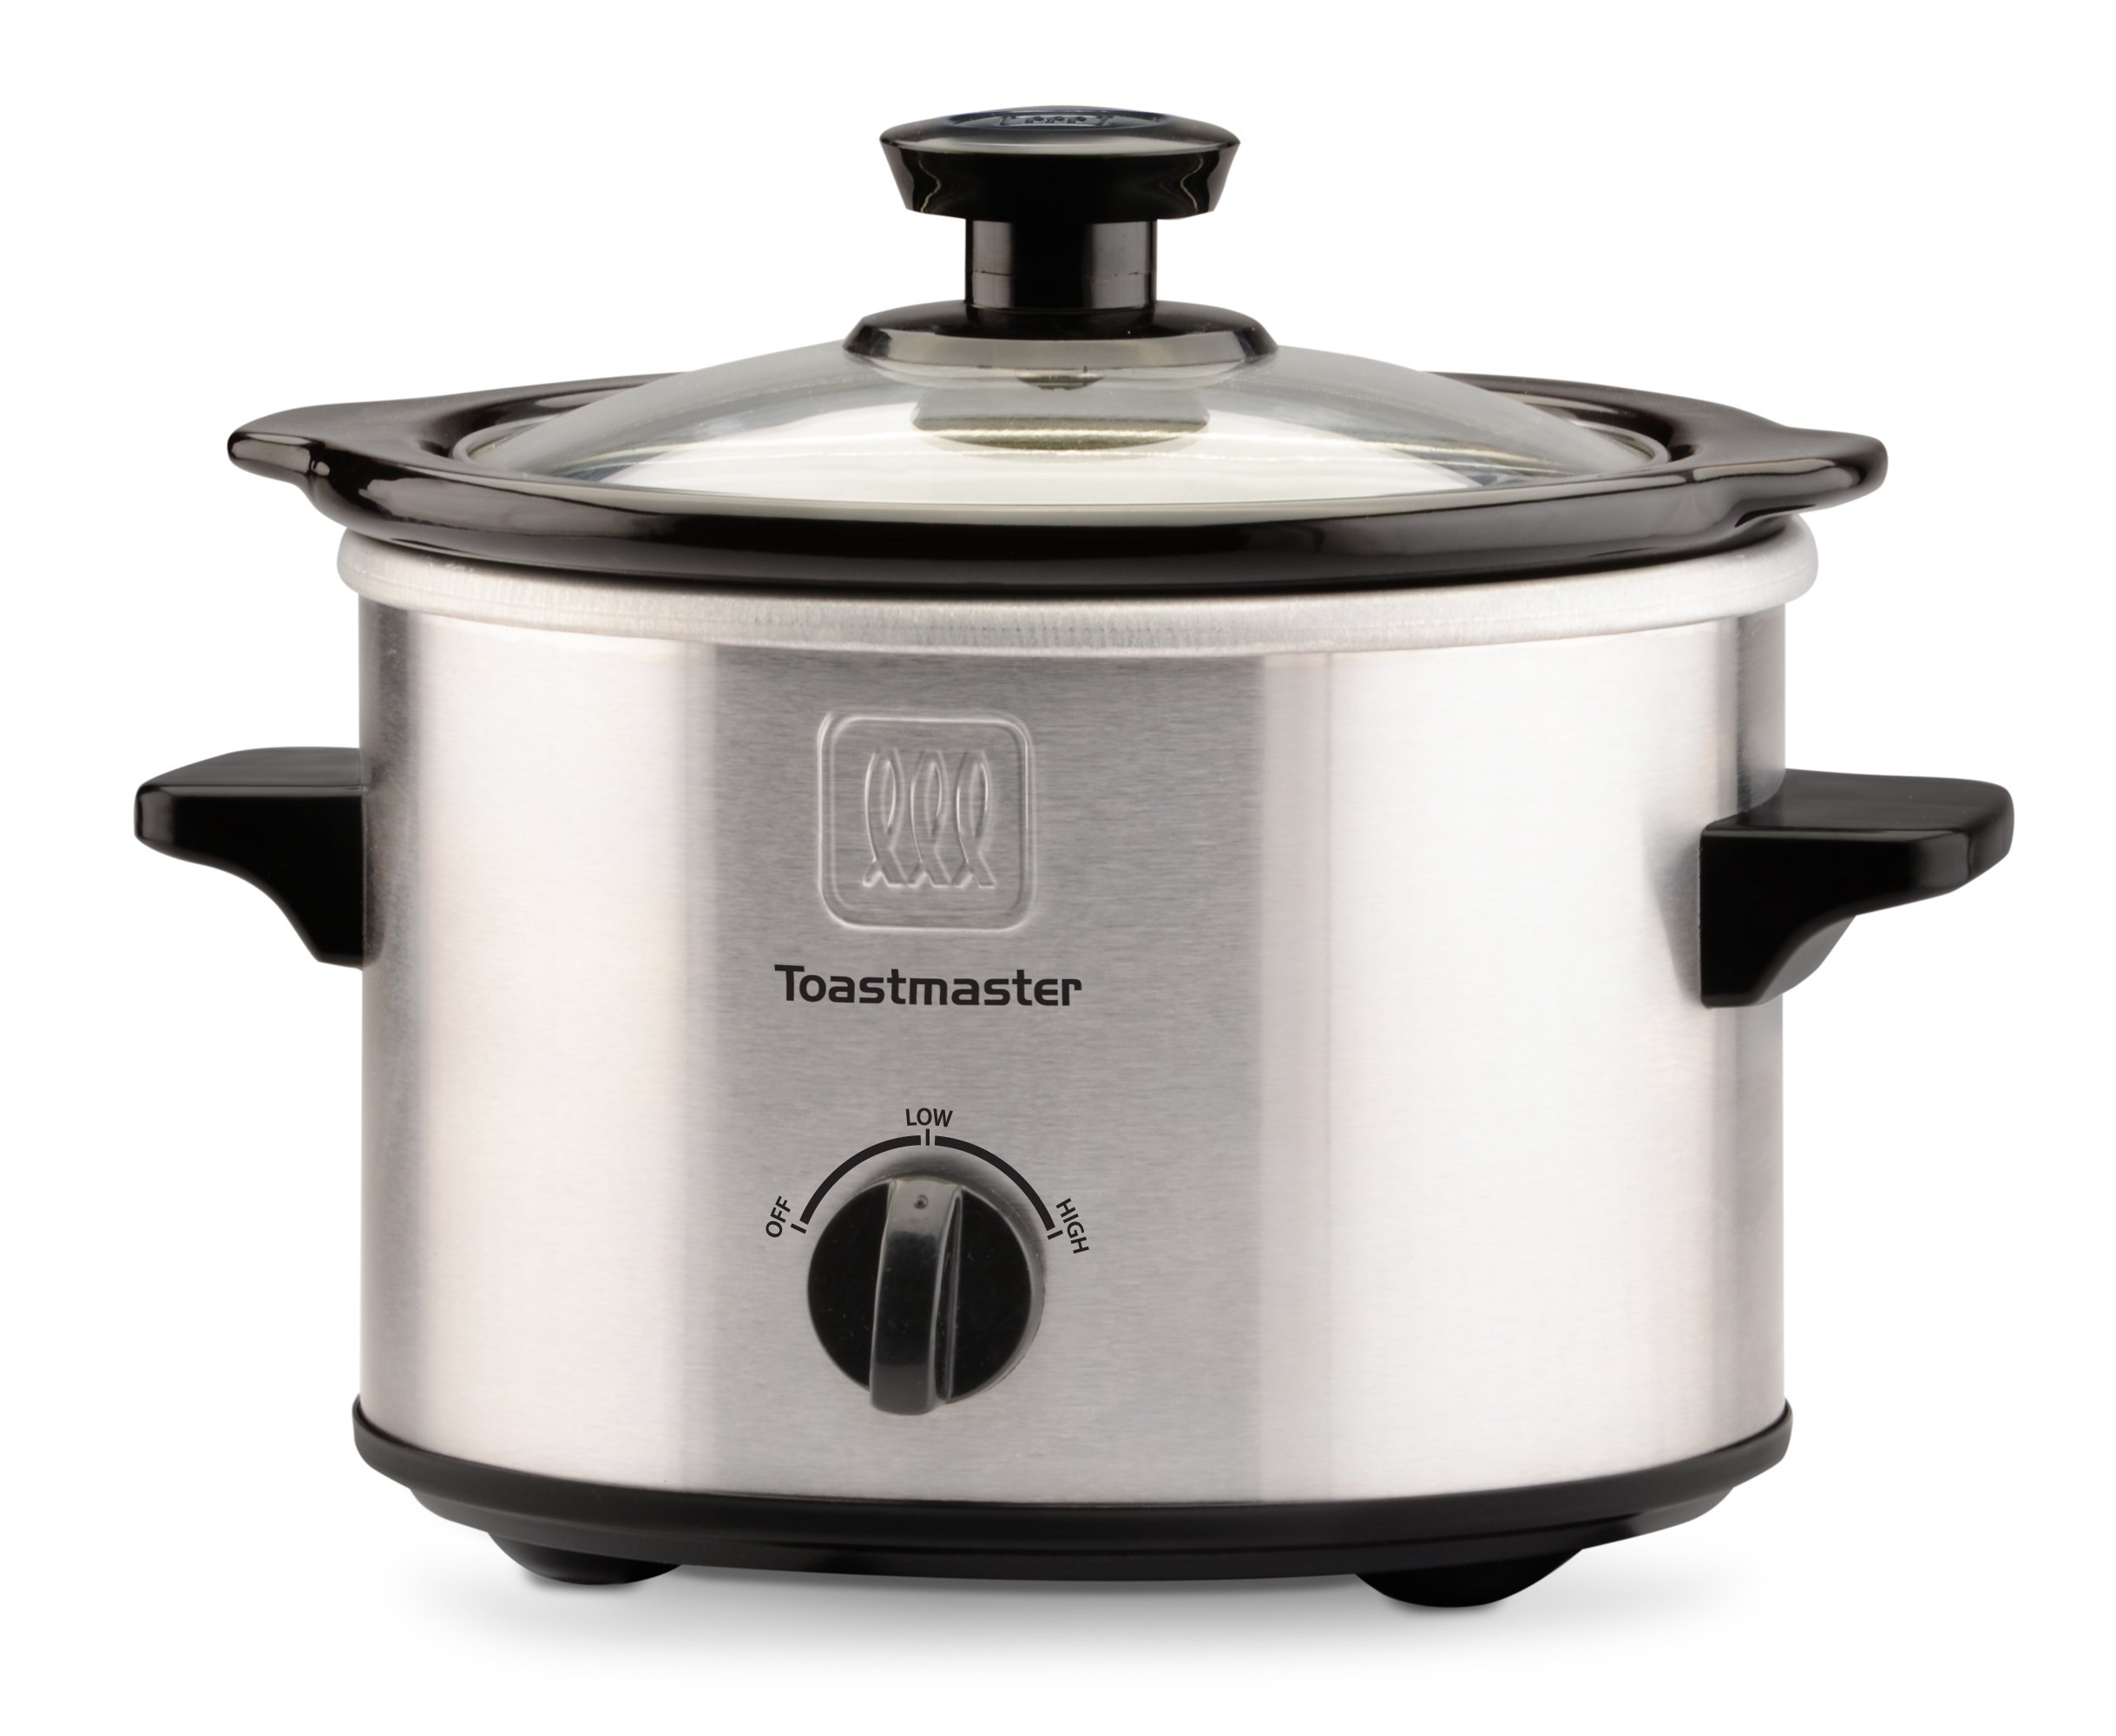 Toastmaster TM-151SC Stainless Steel Slow Cooker with Removable Stoneware Bowl, 1.5-Quart, Silver/Black